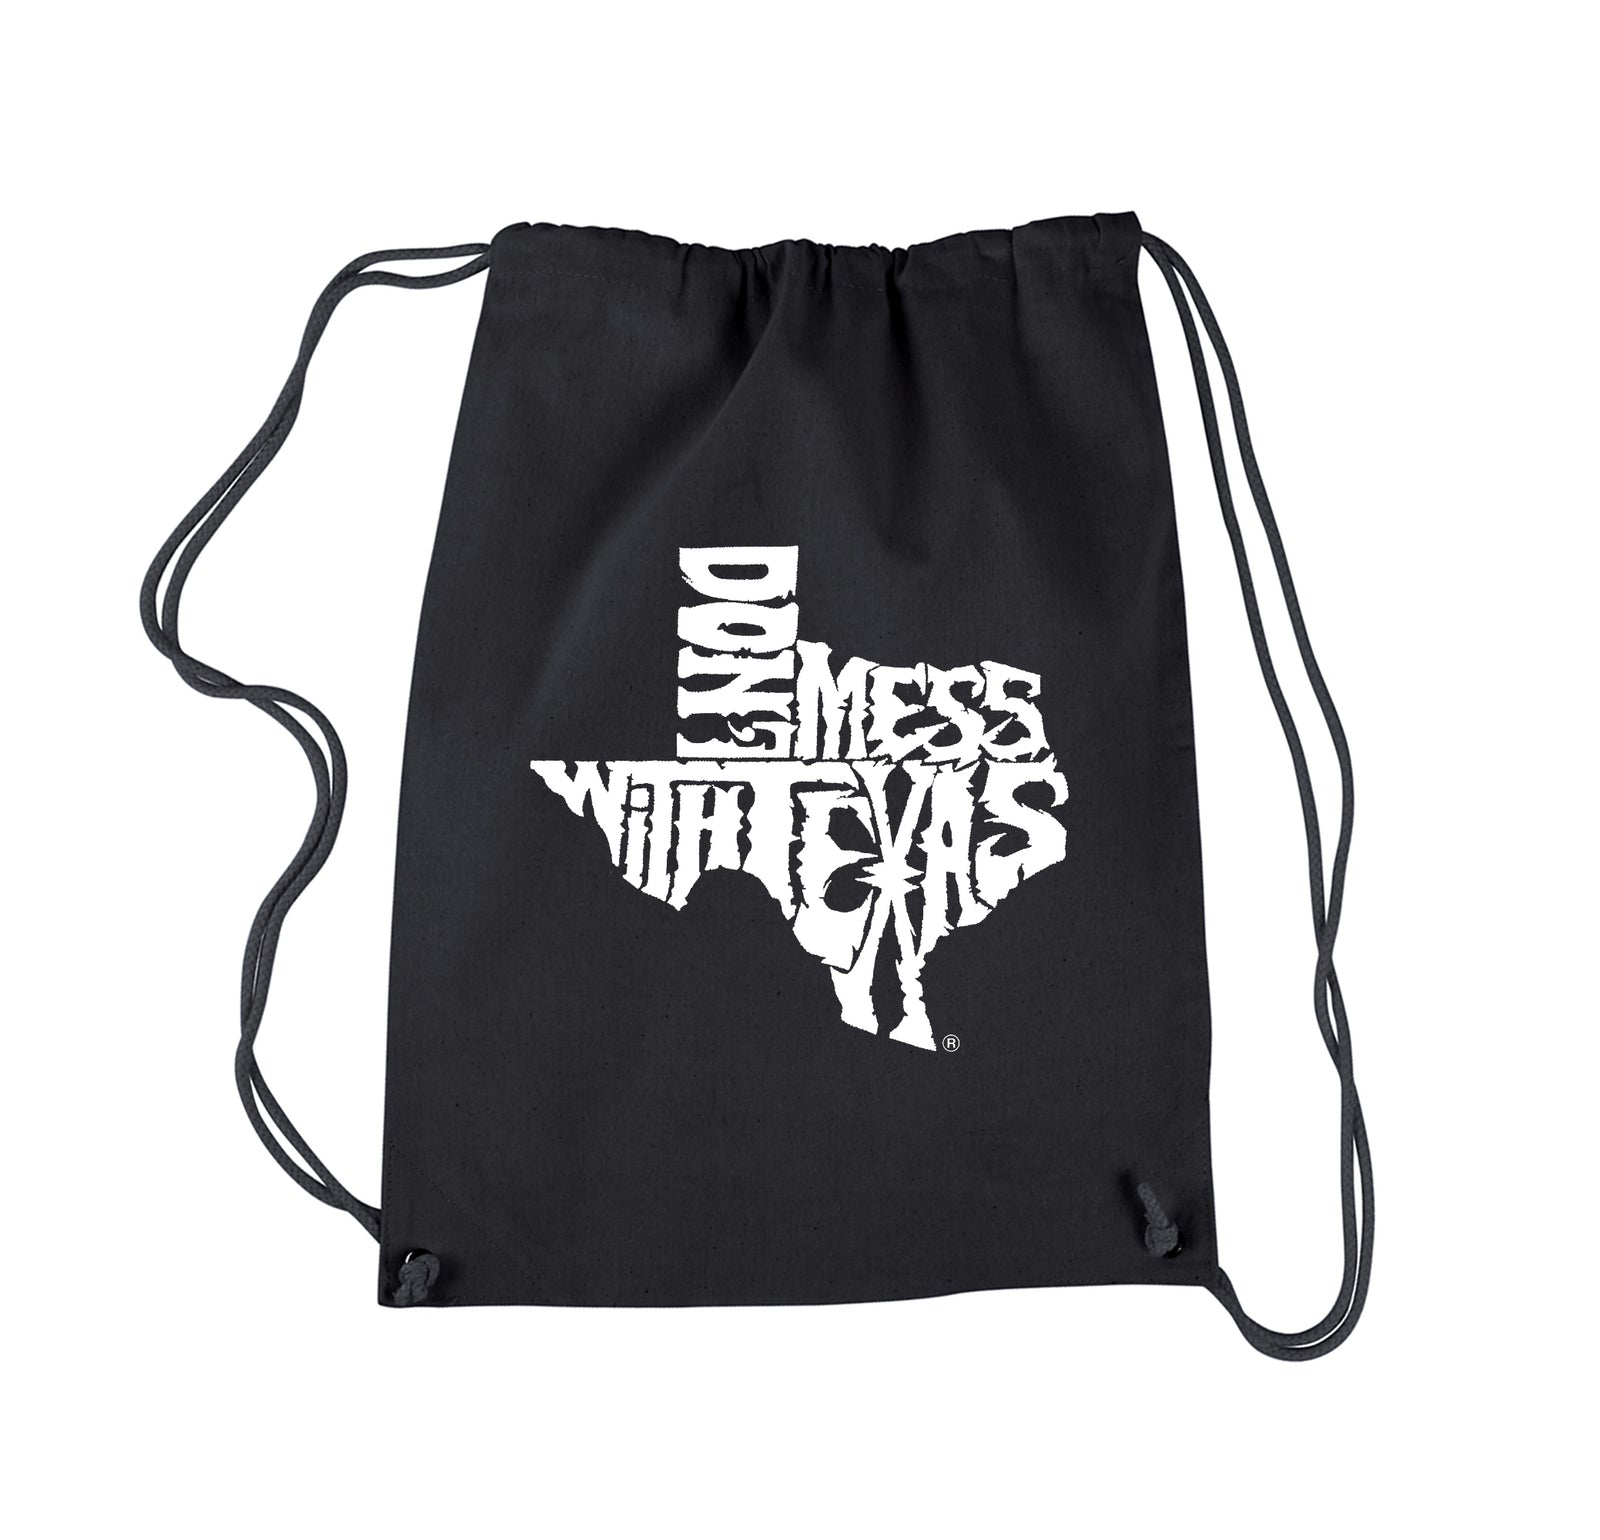 Drawstring Backpack - DONT MESS WITH TEXAS